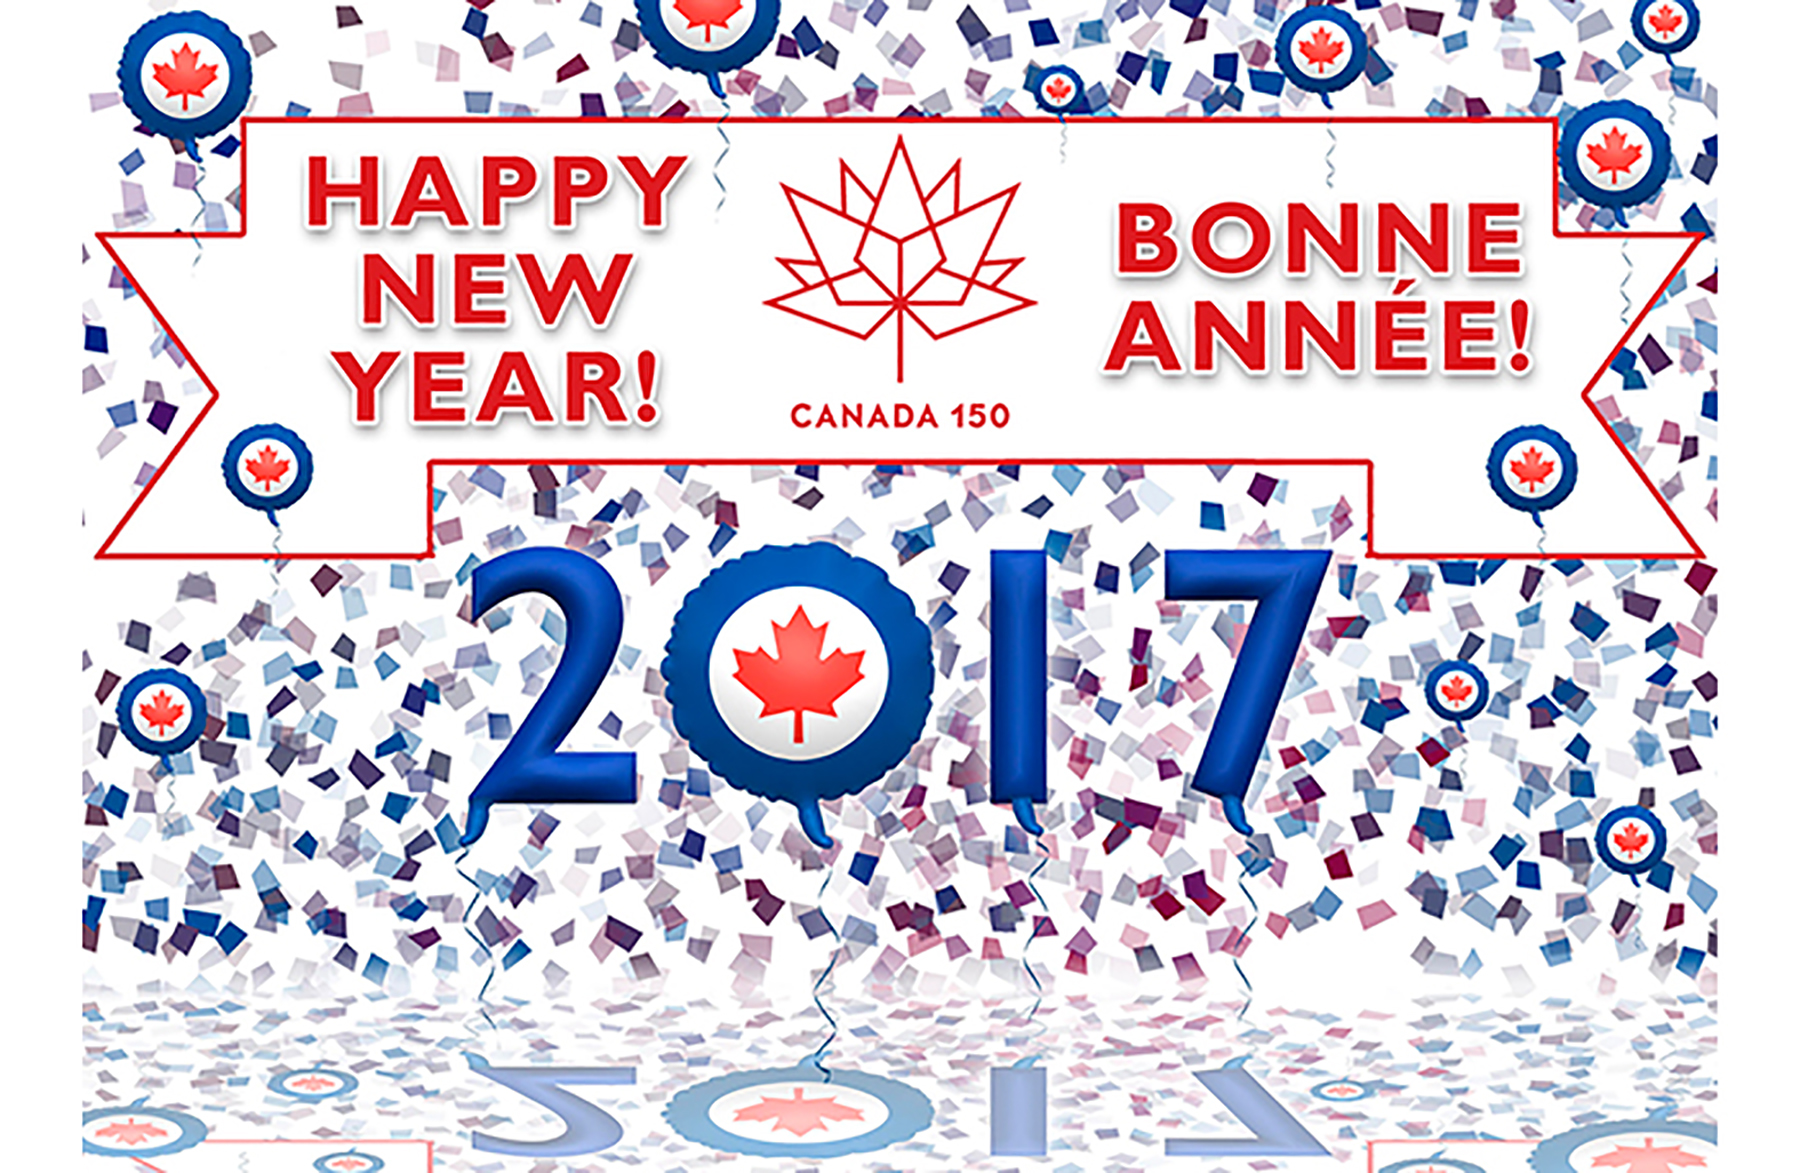 Royal Canadian Air Force News Article New Year Greetings From